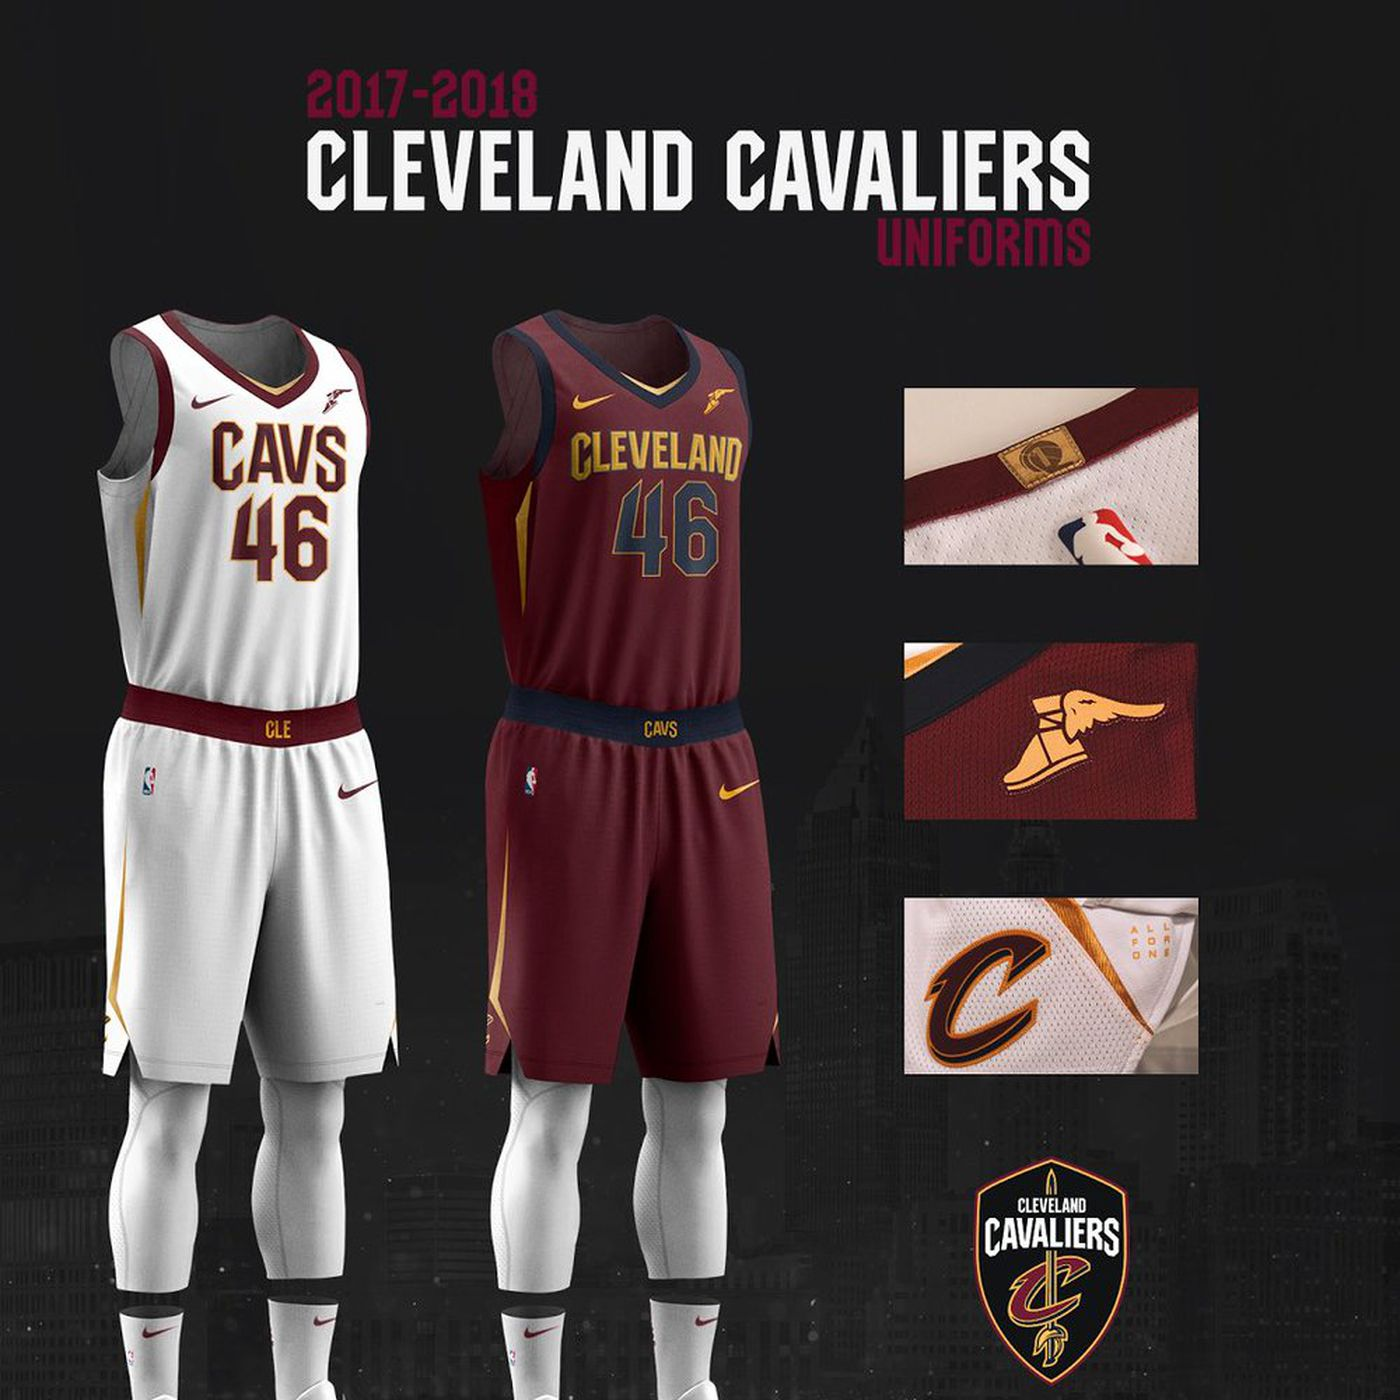 2a054949740 Cavaliers unveil new uniforms for 2017-18 season - Fear The Sword